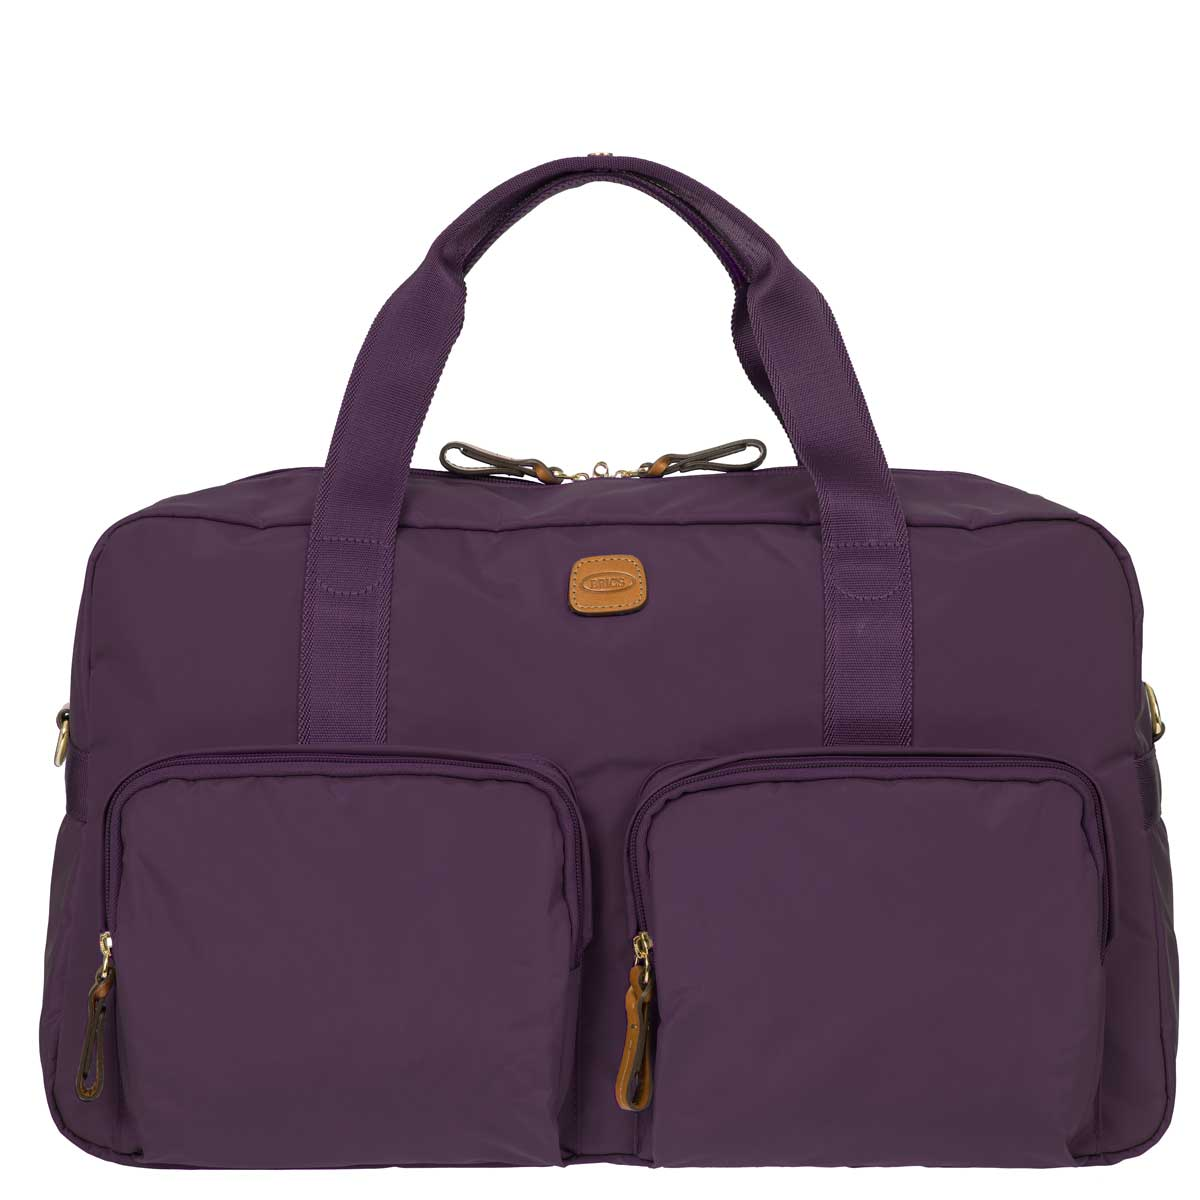 The newest style to the X-Bag line, the Boarding Duffle, is based on the concept of transformability and function. Thanks to its new shapes, patterns and refined details, it will be the must have fashion accessory. BRIC'S Core X-Bag line consists of black, olive, navy and purple.